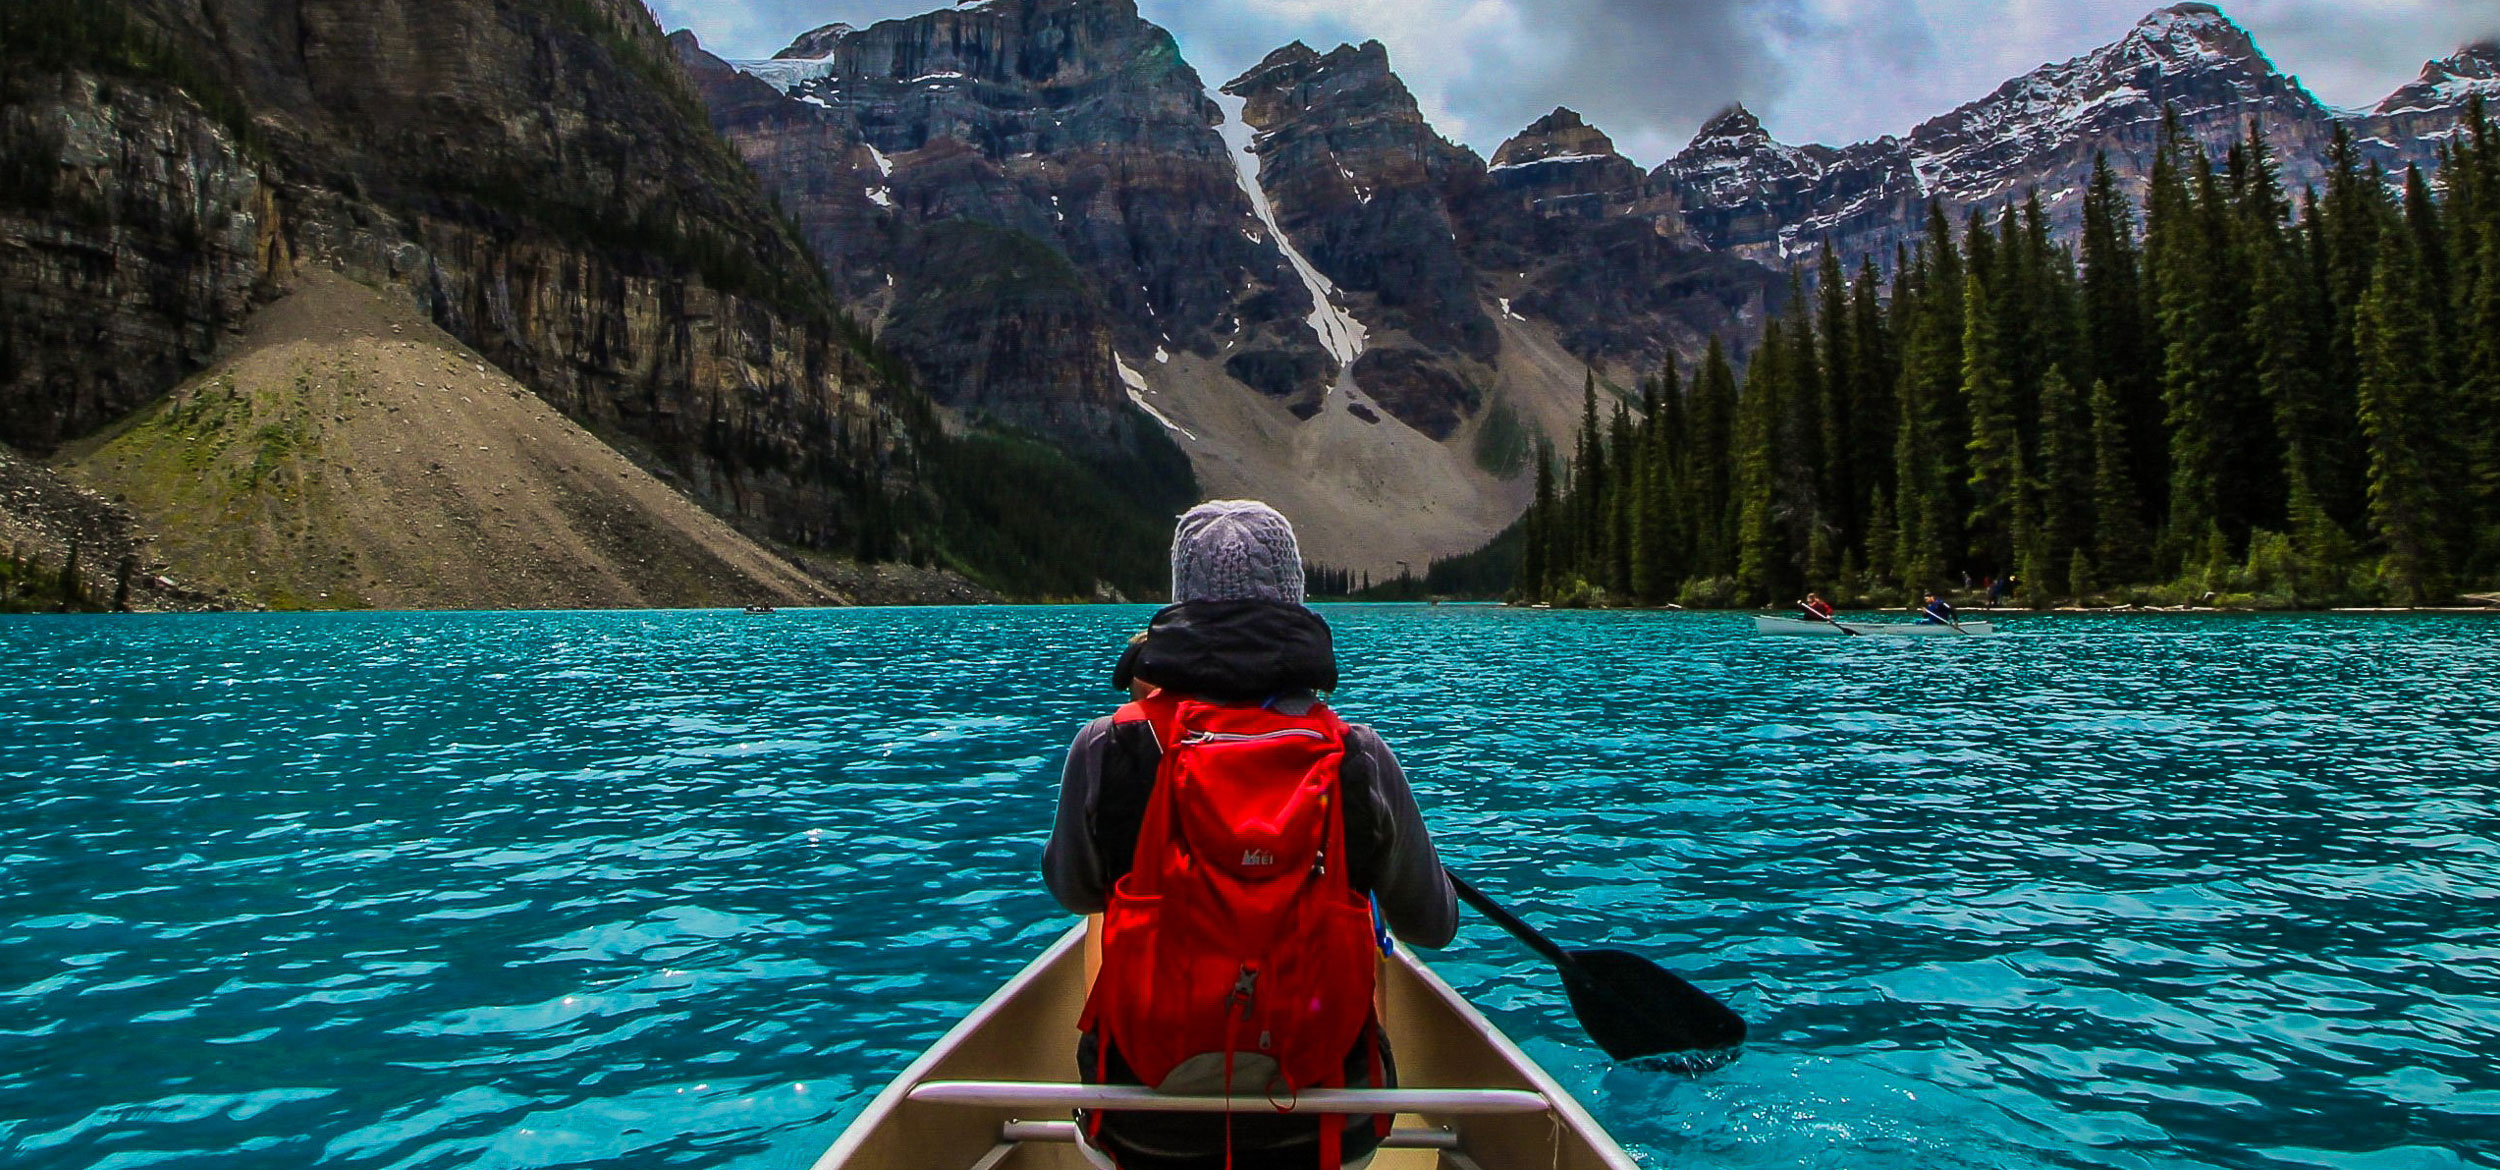 Woman canoeing on the turquoise water of Moraine Lake in Banff National Park, Canada.